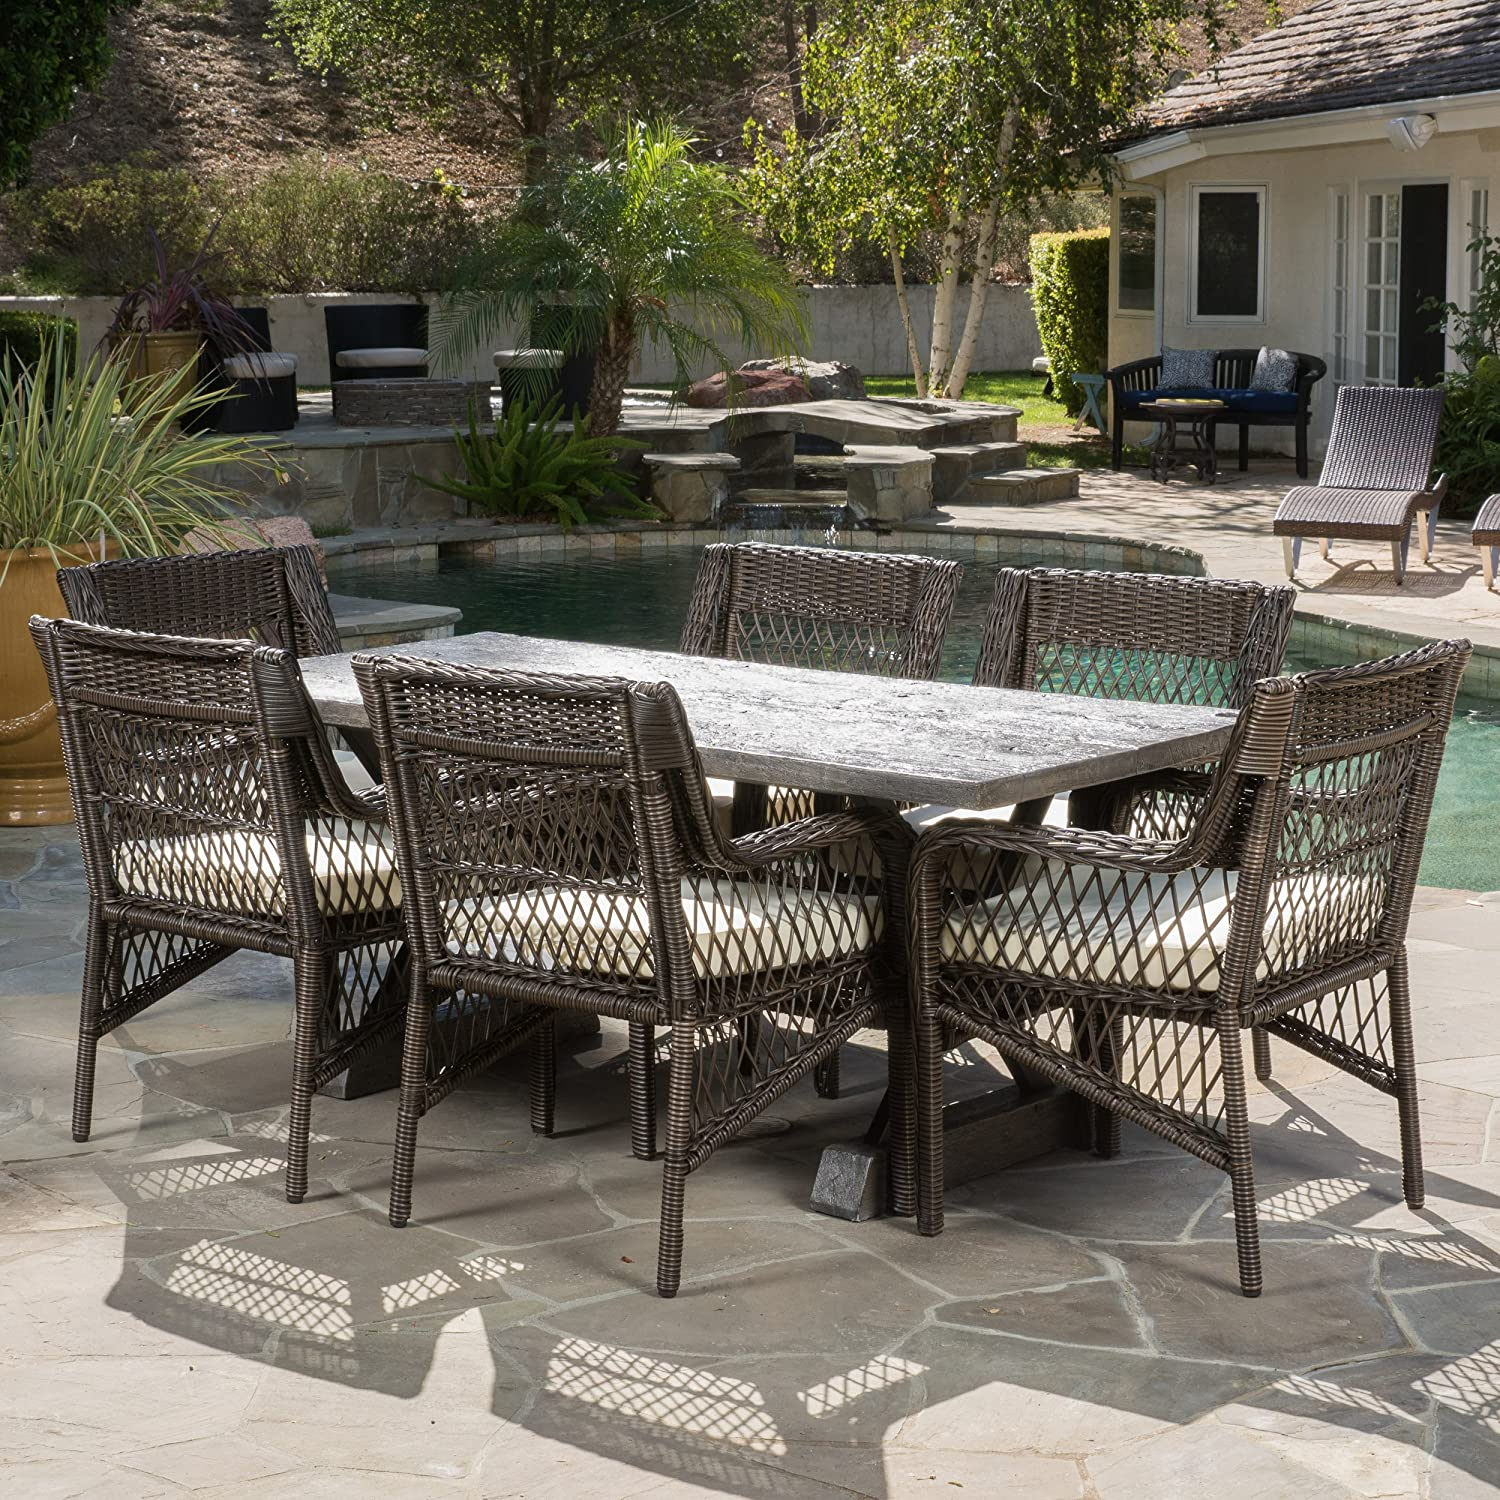 Christopher Knight Home Linden Outdoor 7-Piece Dining Set with Cushions